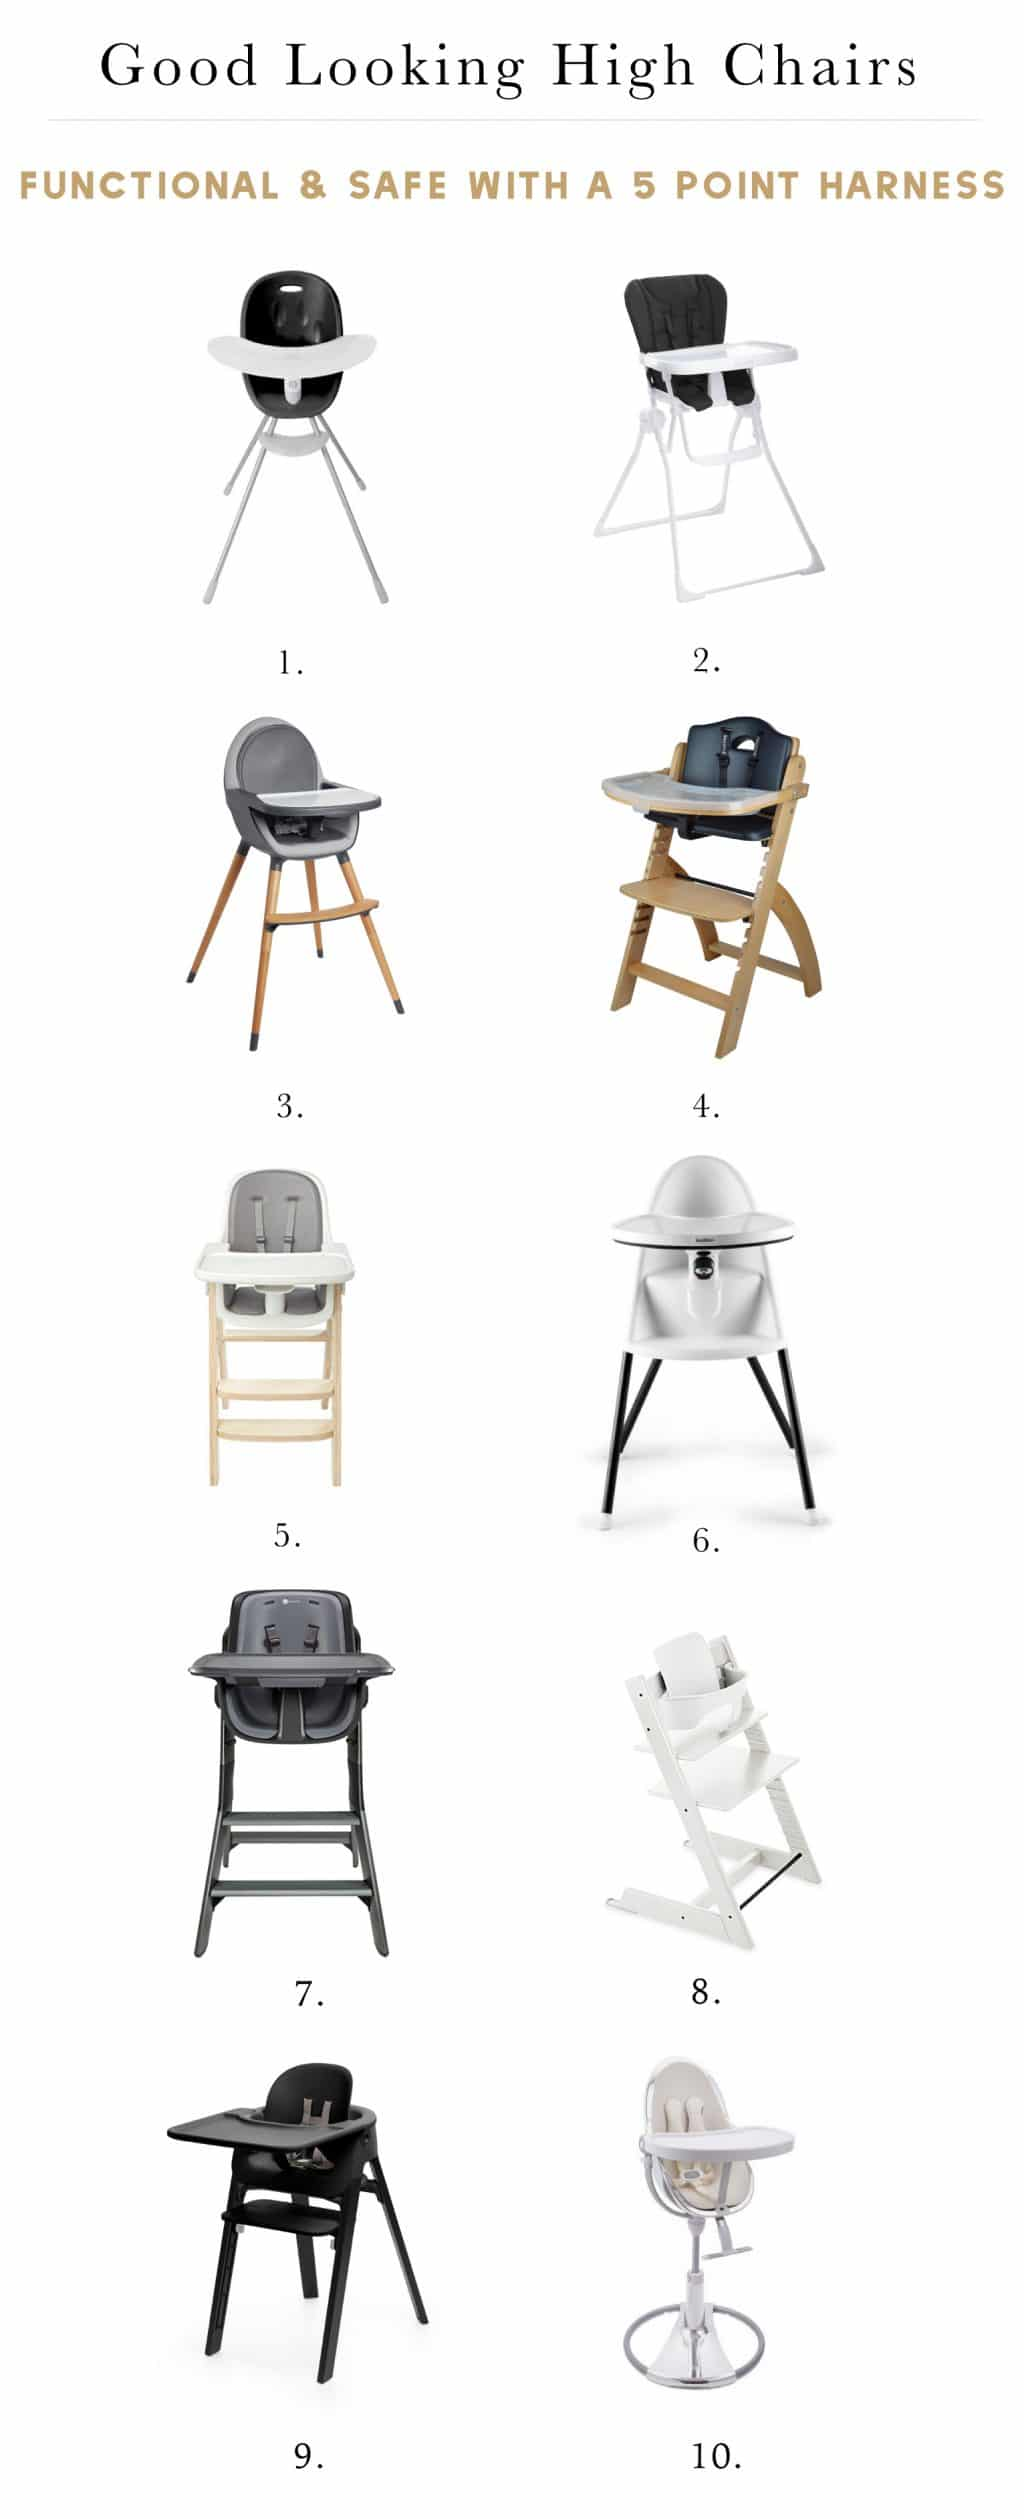 10 Really Good Looking High Chairs That Are Also Safe And